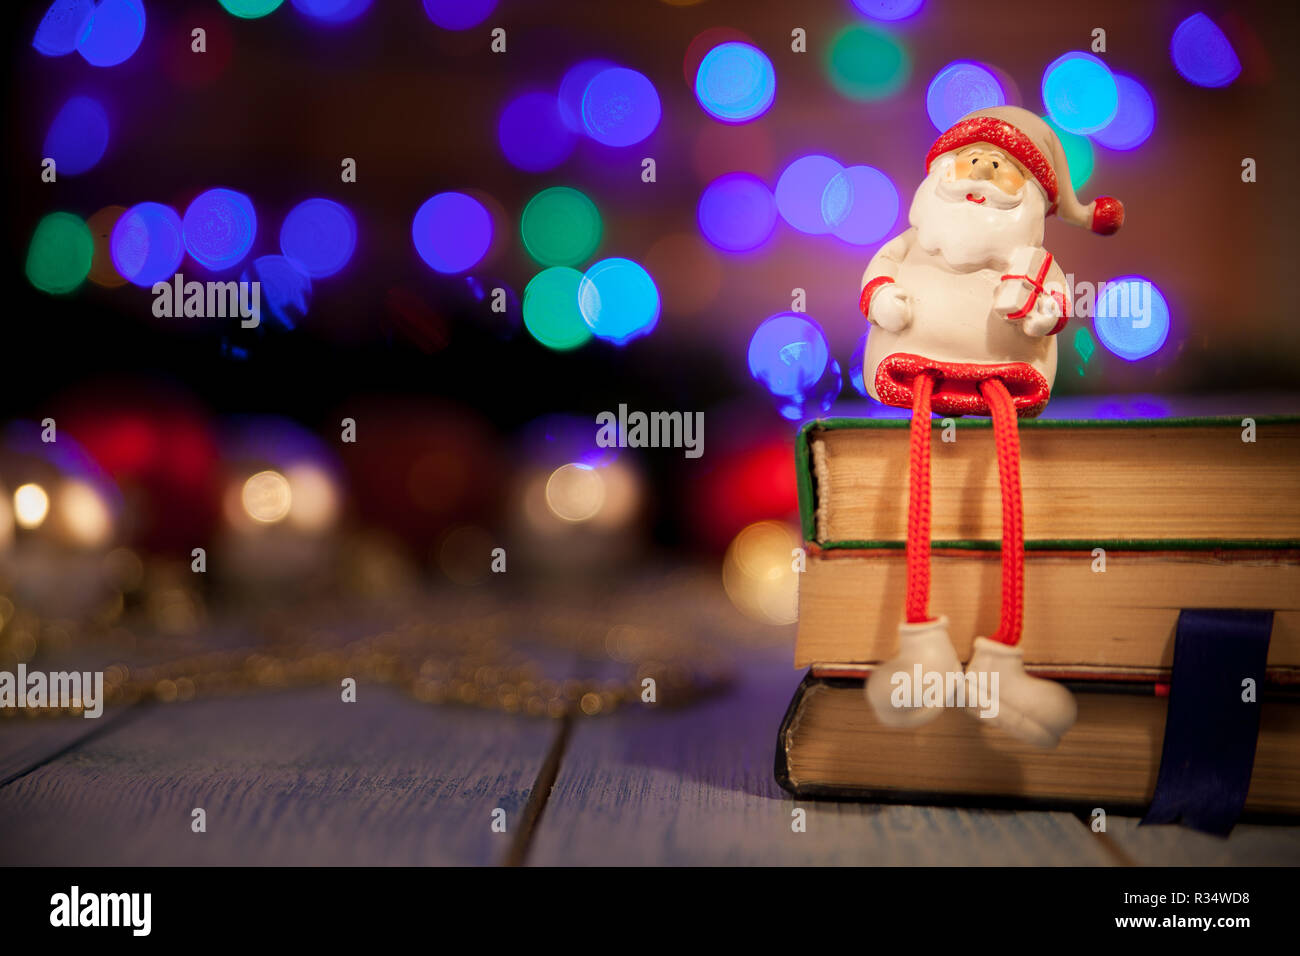 Toy Santa Klaus with a gift sits on the books on the background bokeh Stock Photo